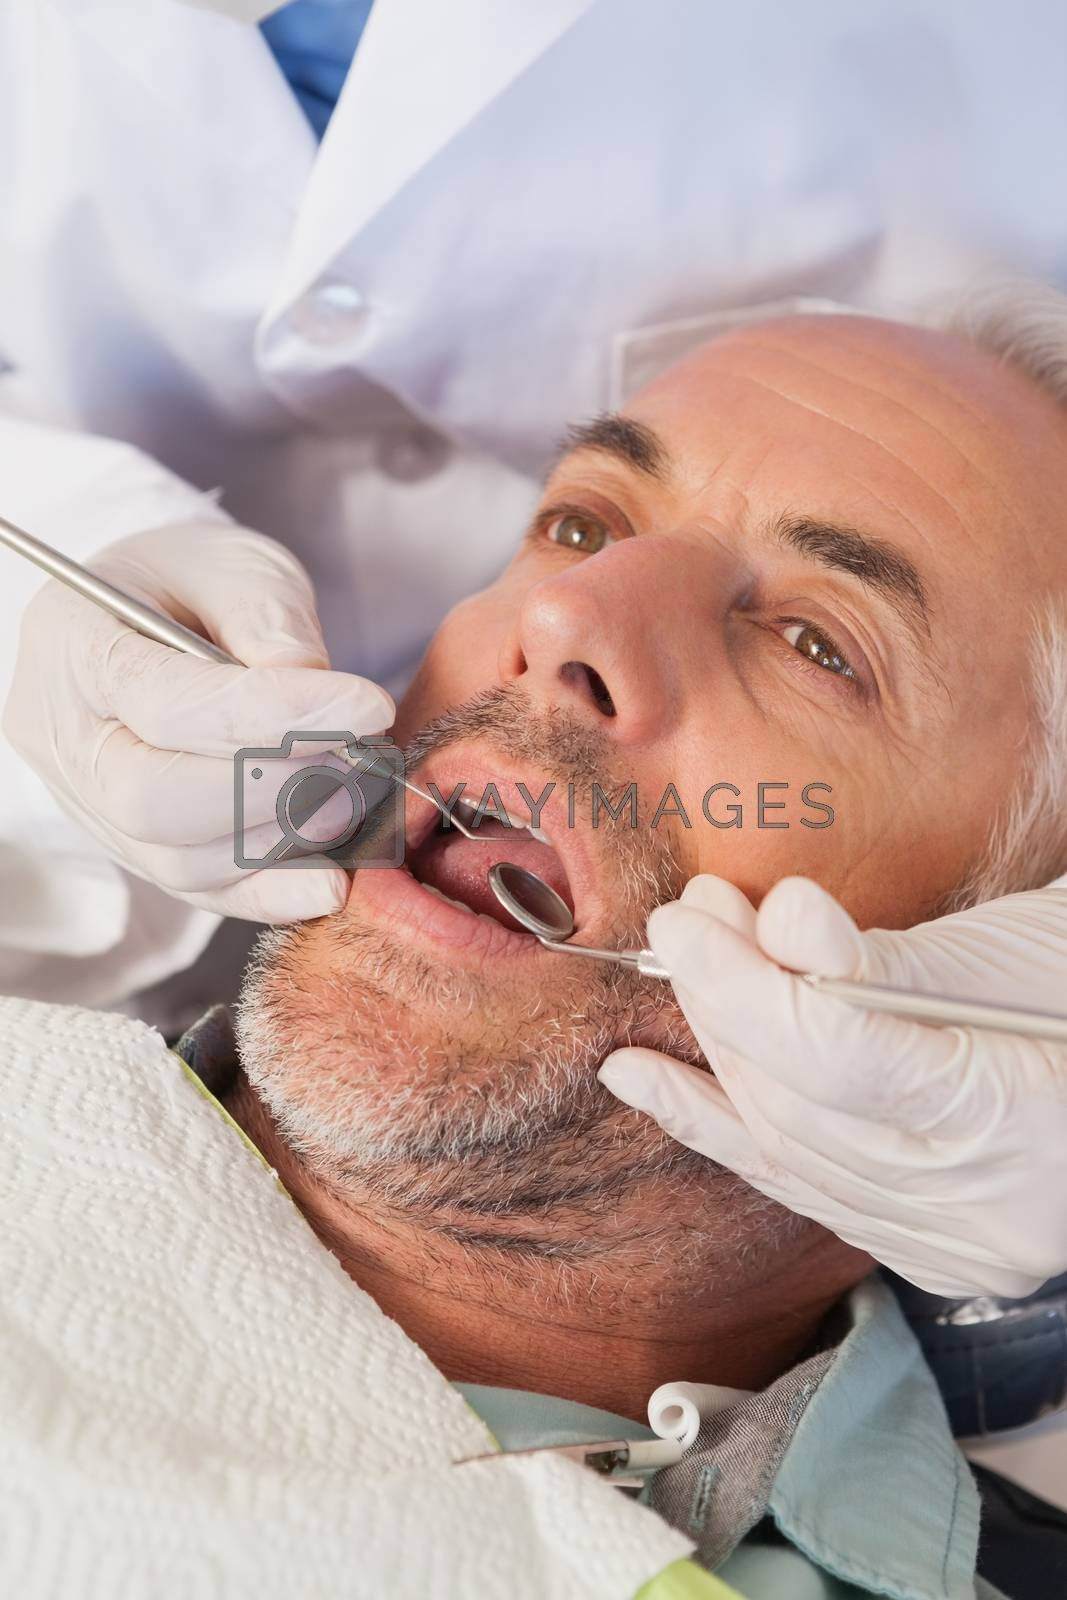 Dentist examining a patients teeth in the dentists chair at the dental clinic